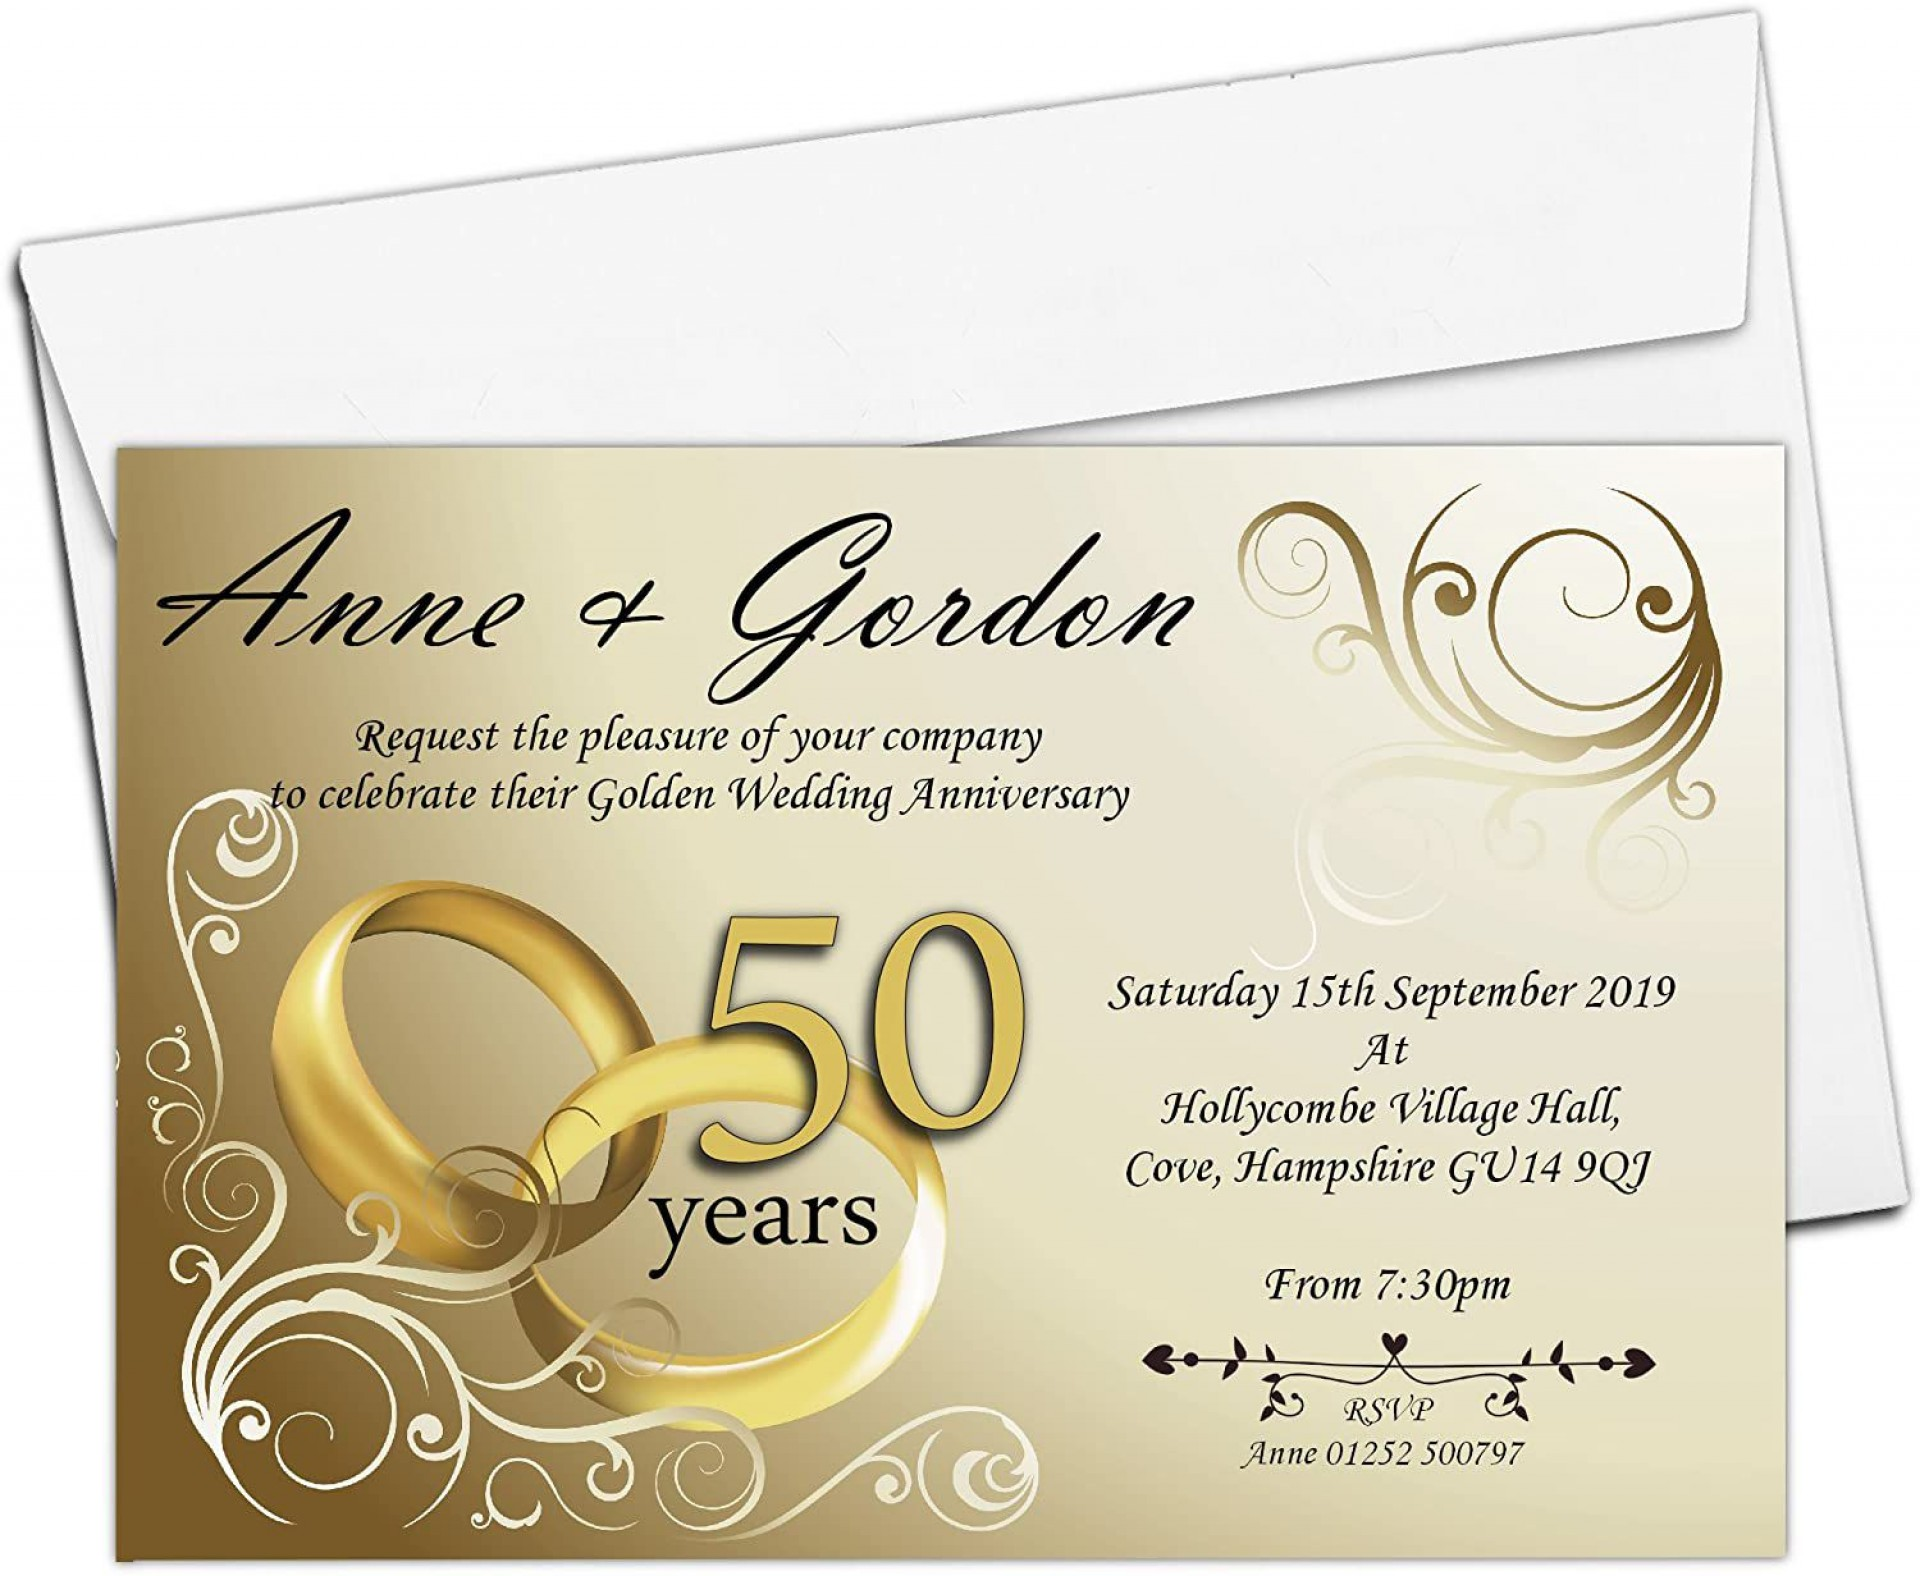 003 Archaicawful 50th Anniversary Invitation Design Concept  Designs Wedding Template Microsoft Word Surprise Party Wording Card Idea1920